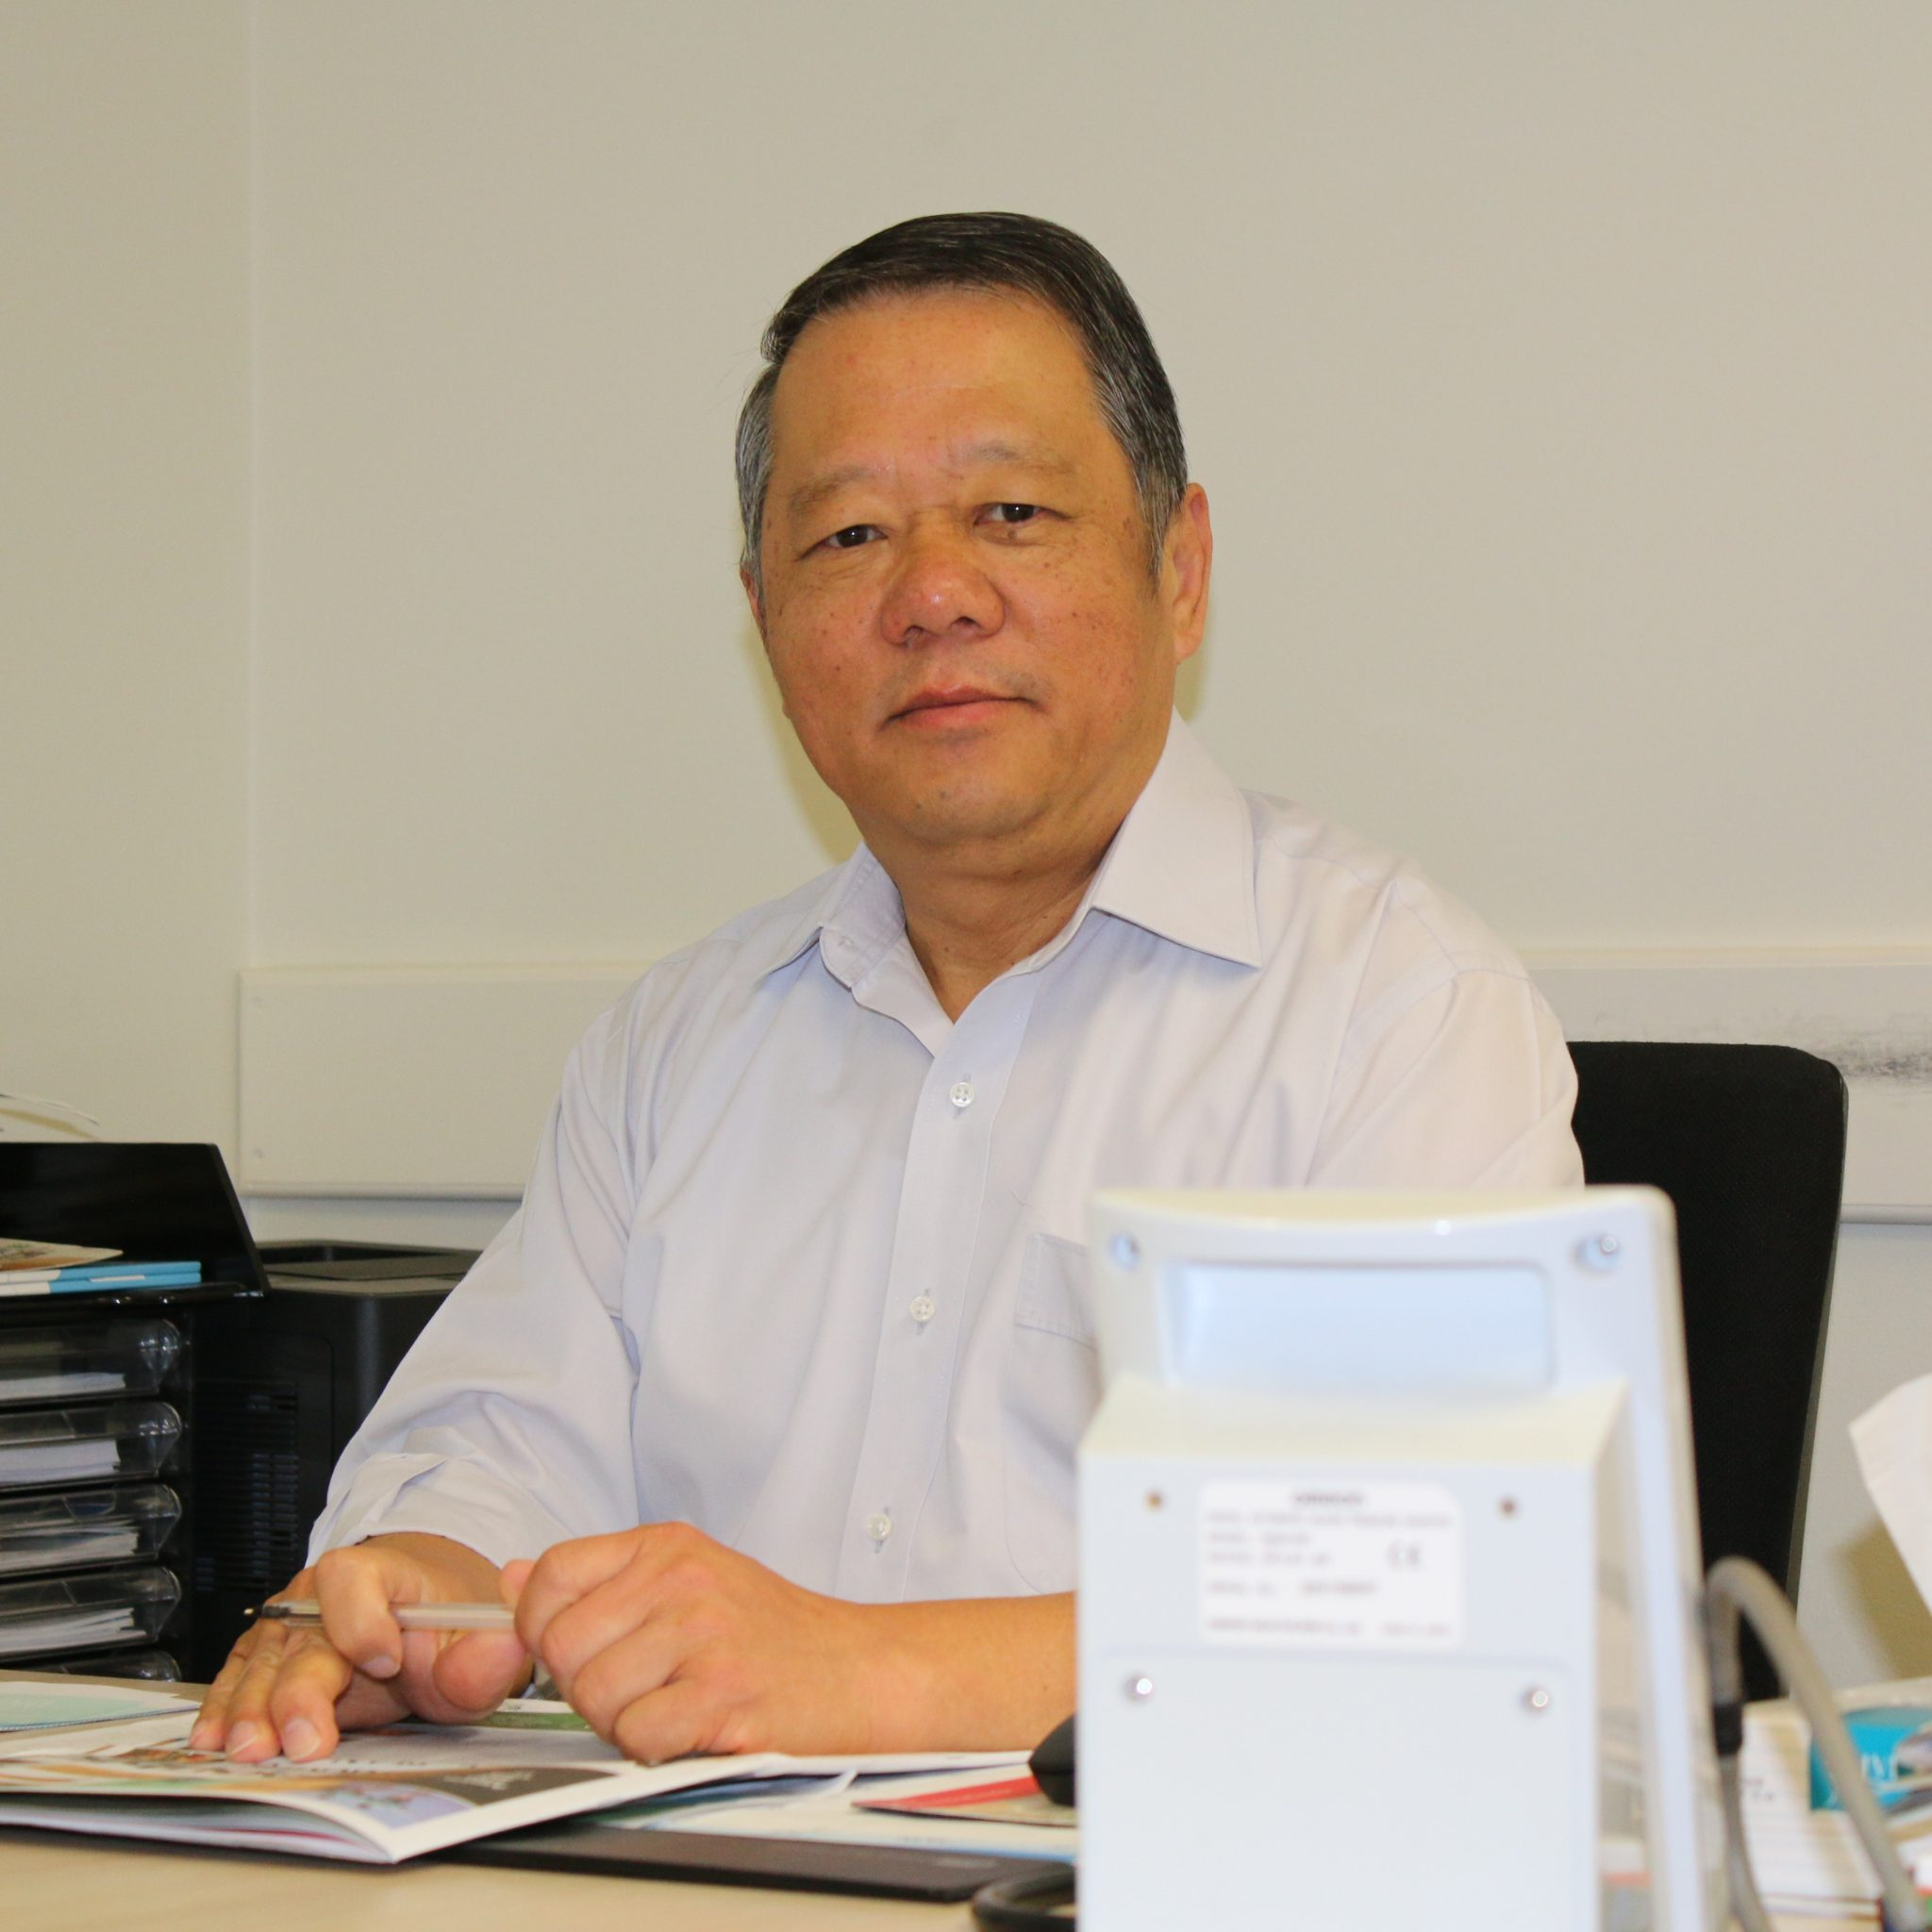 Dr Peter Tay